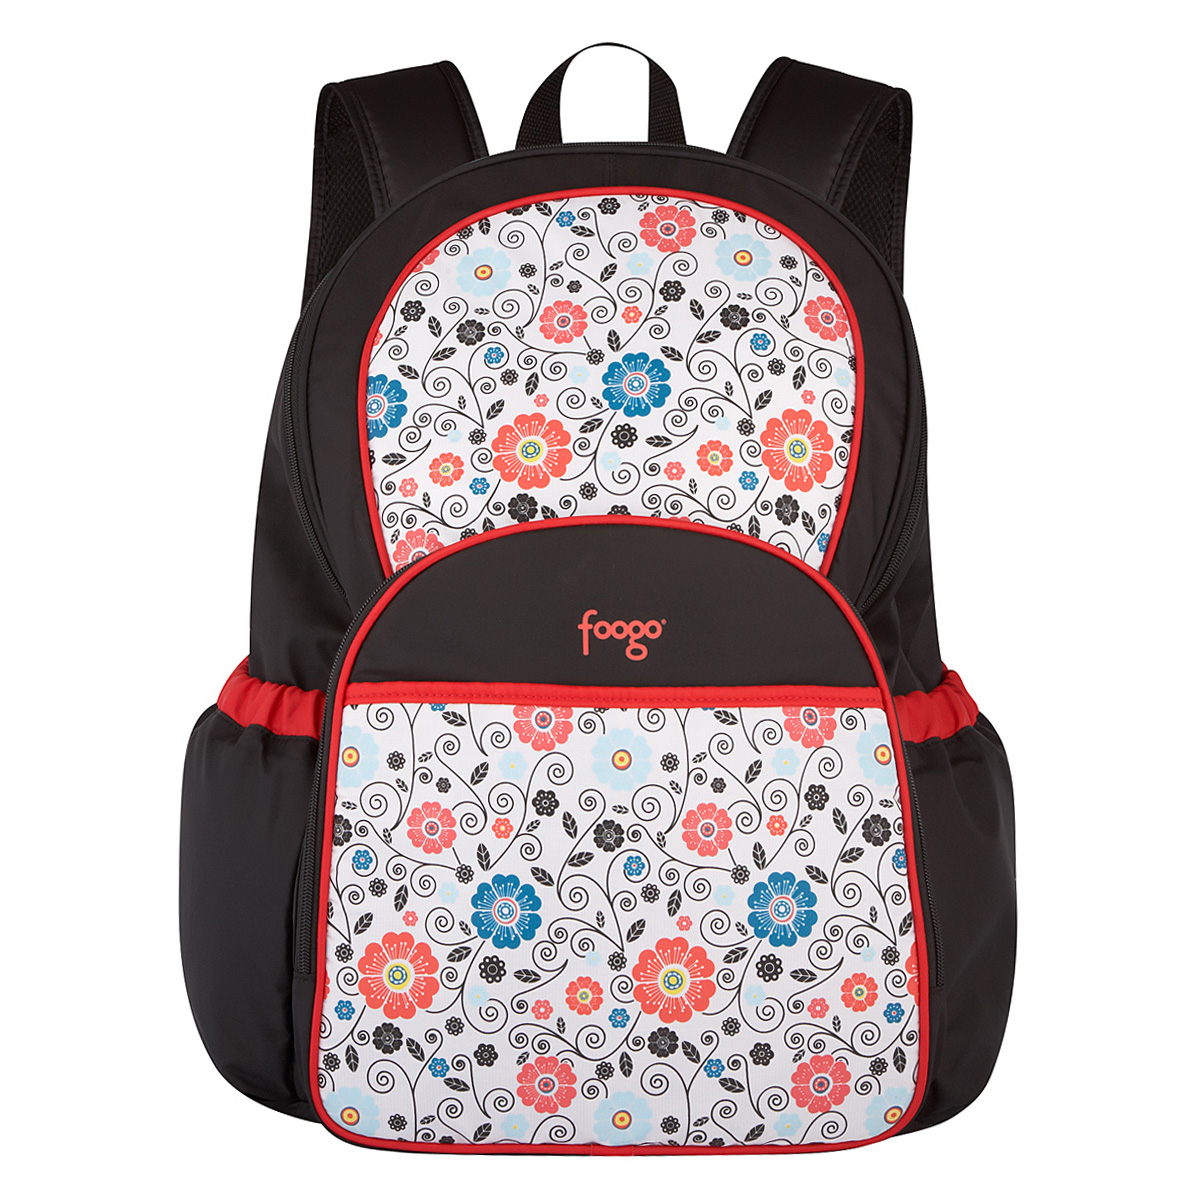 Thermos Foogo Diaper Bag Backpack Tote Insulated with Baby Changing Mat Laundry For Mom